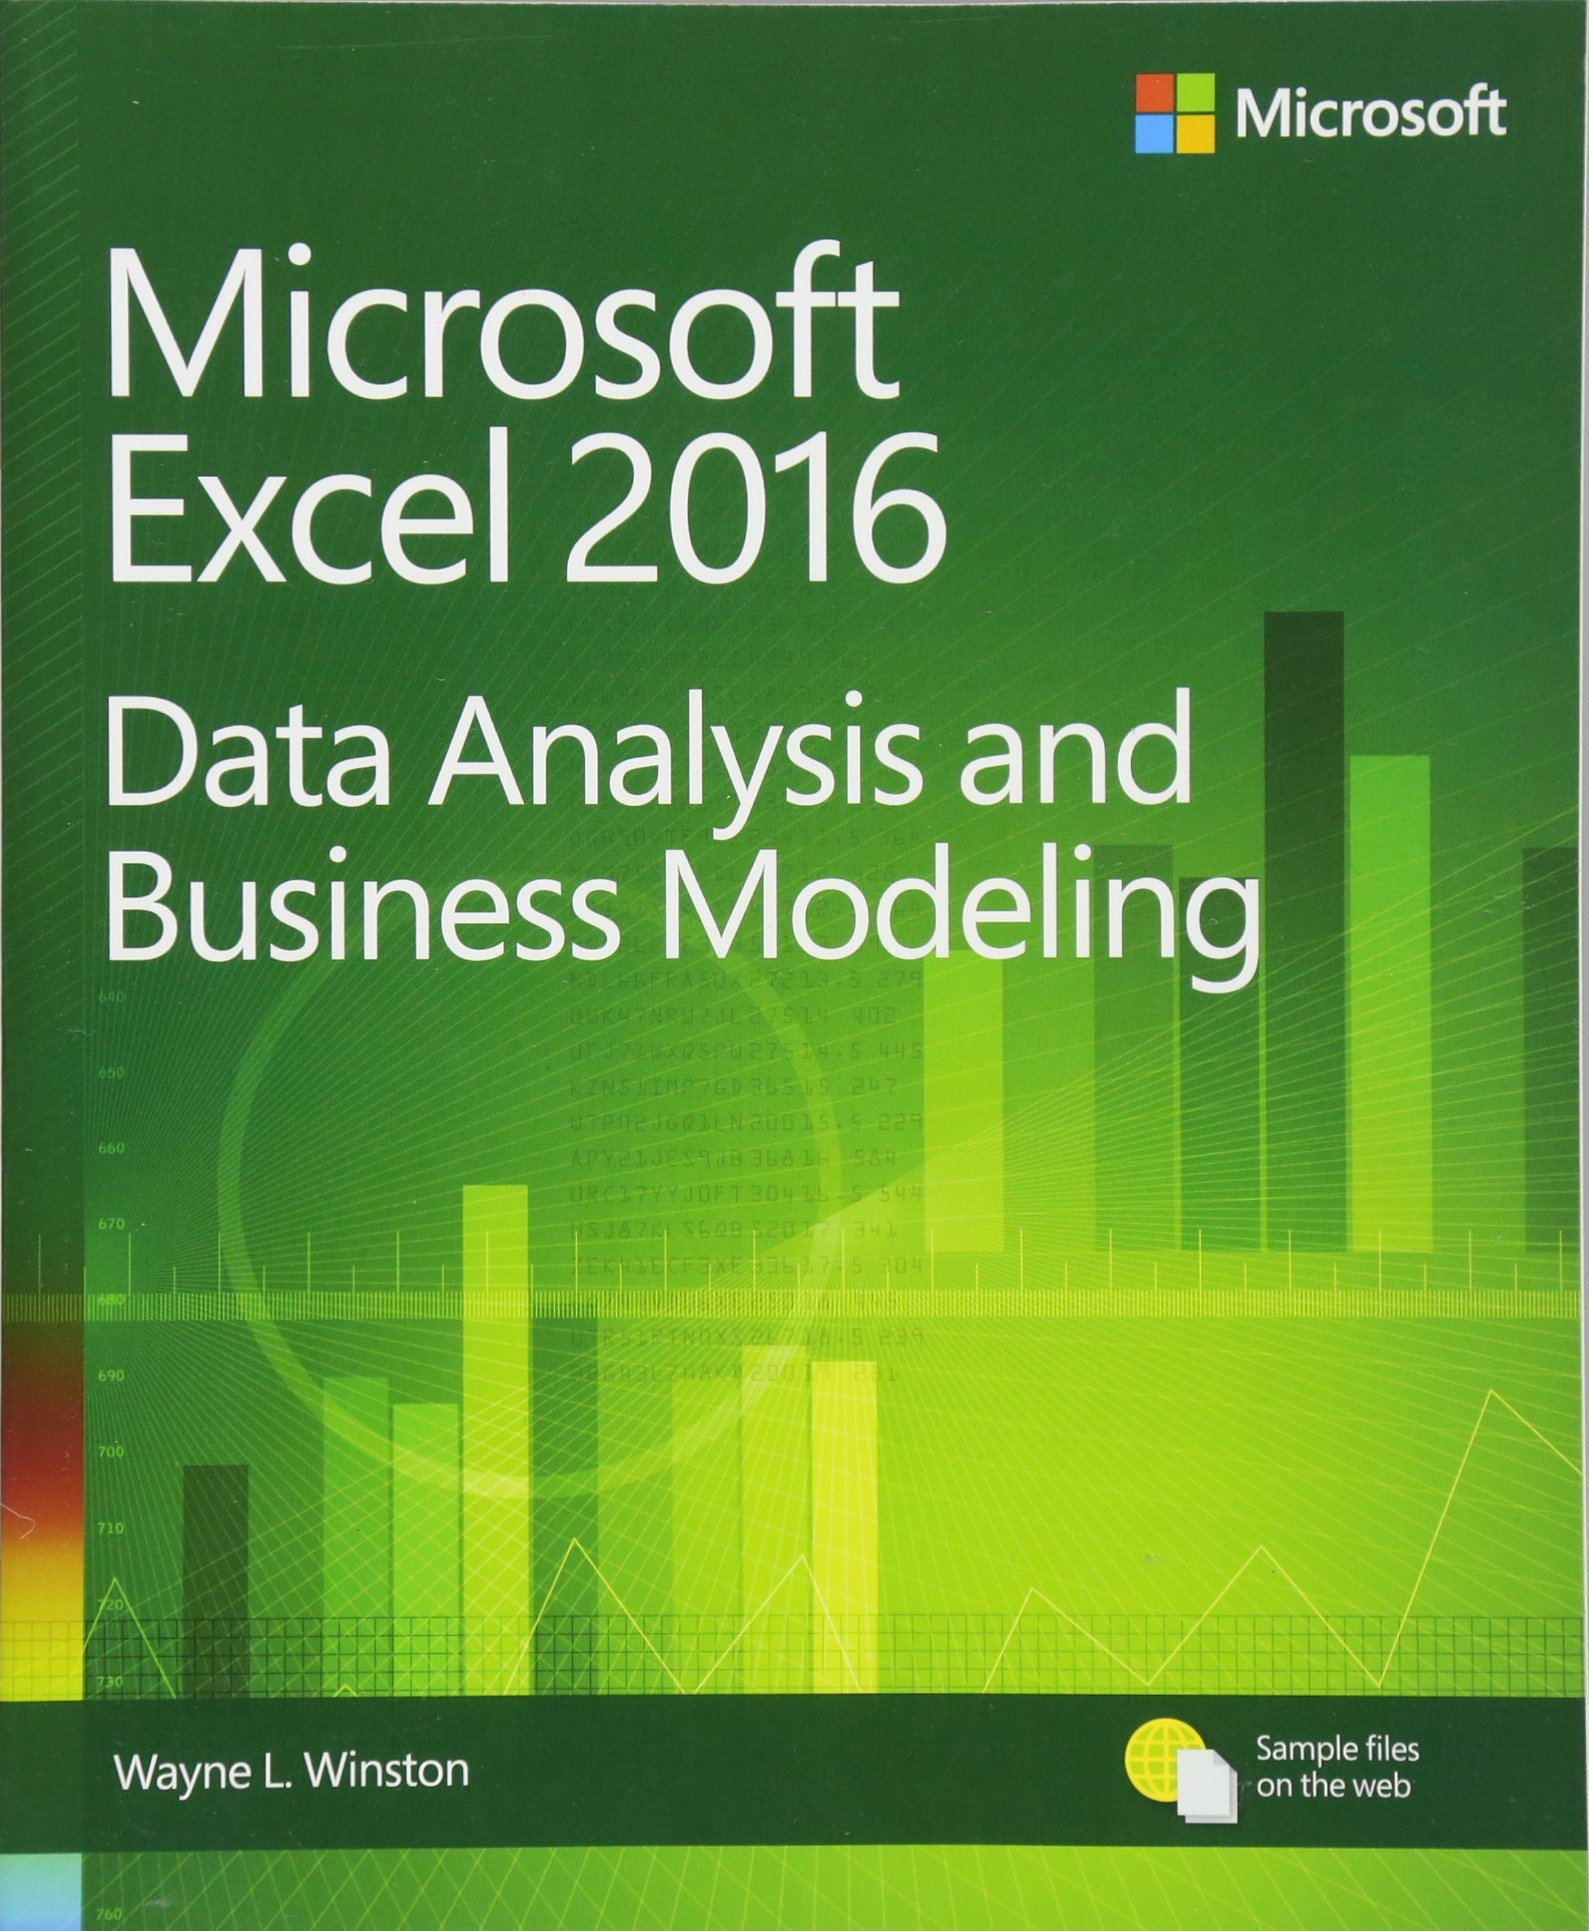 Microsoft Excel Data Analysis and Business Modeling: Amazon